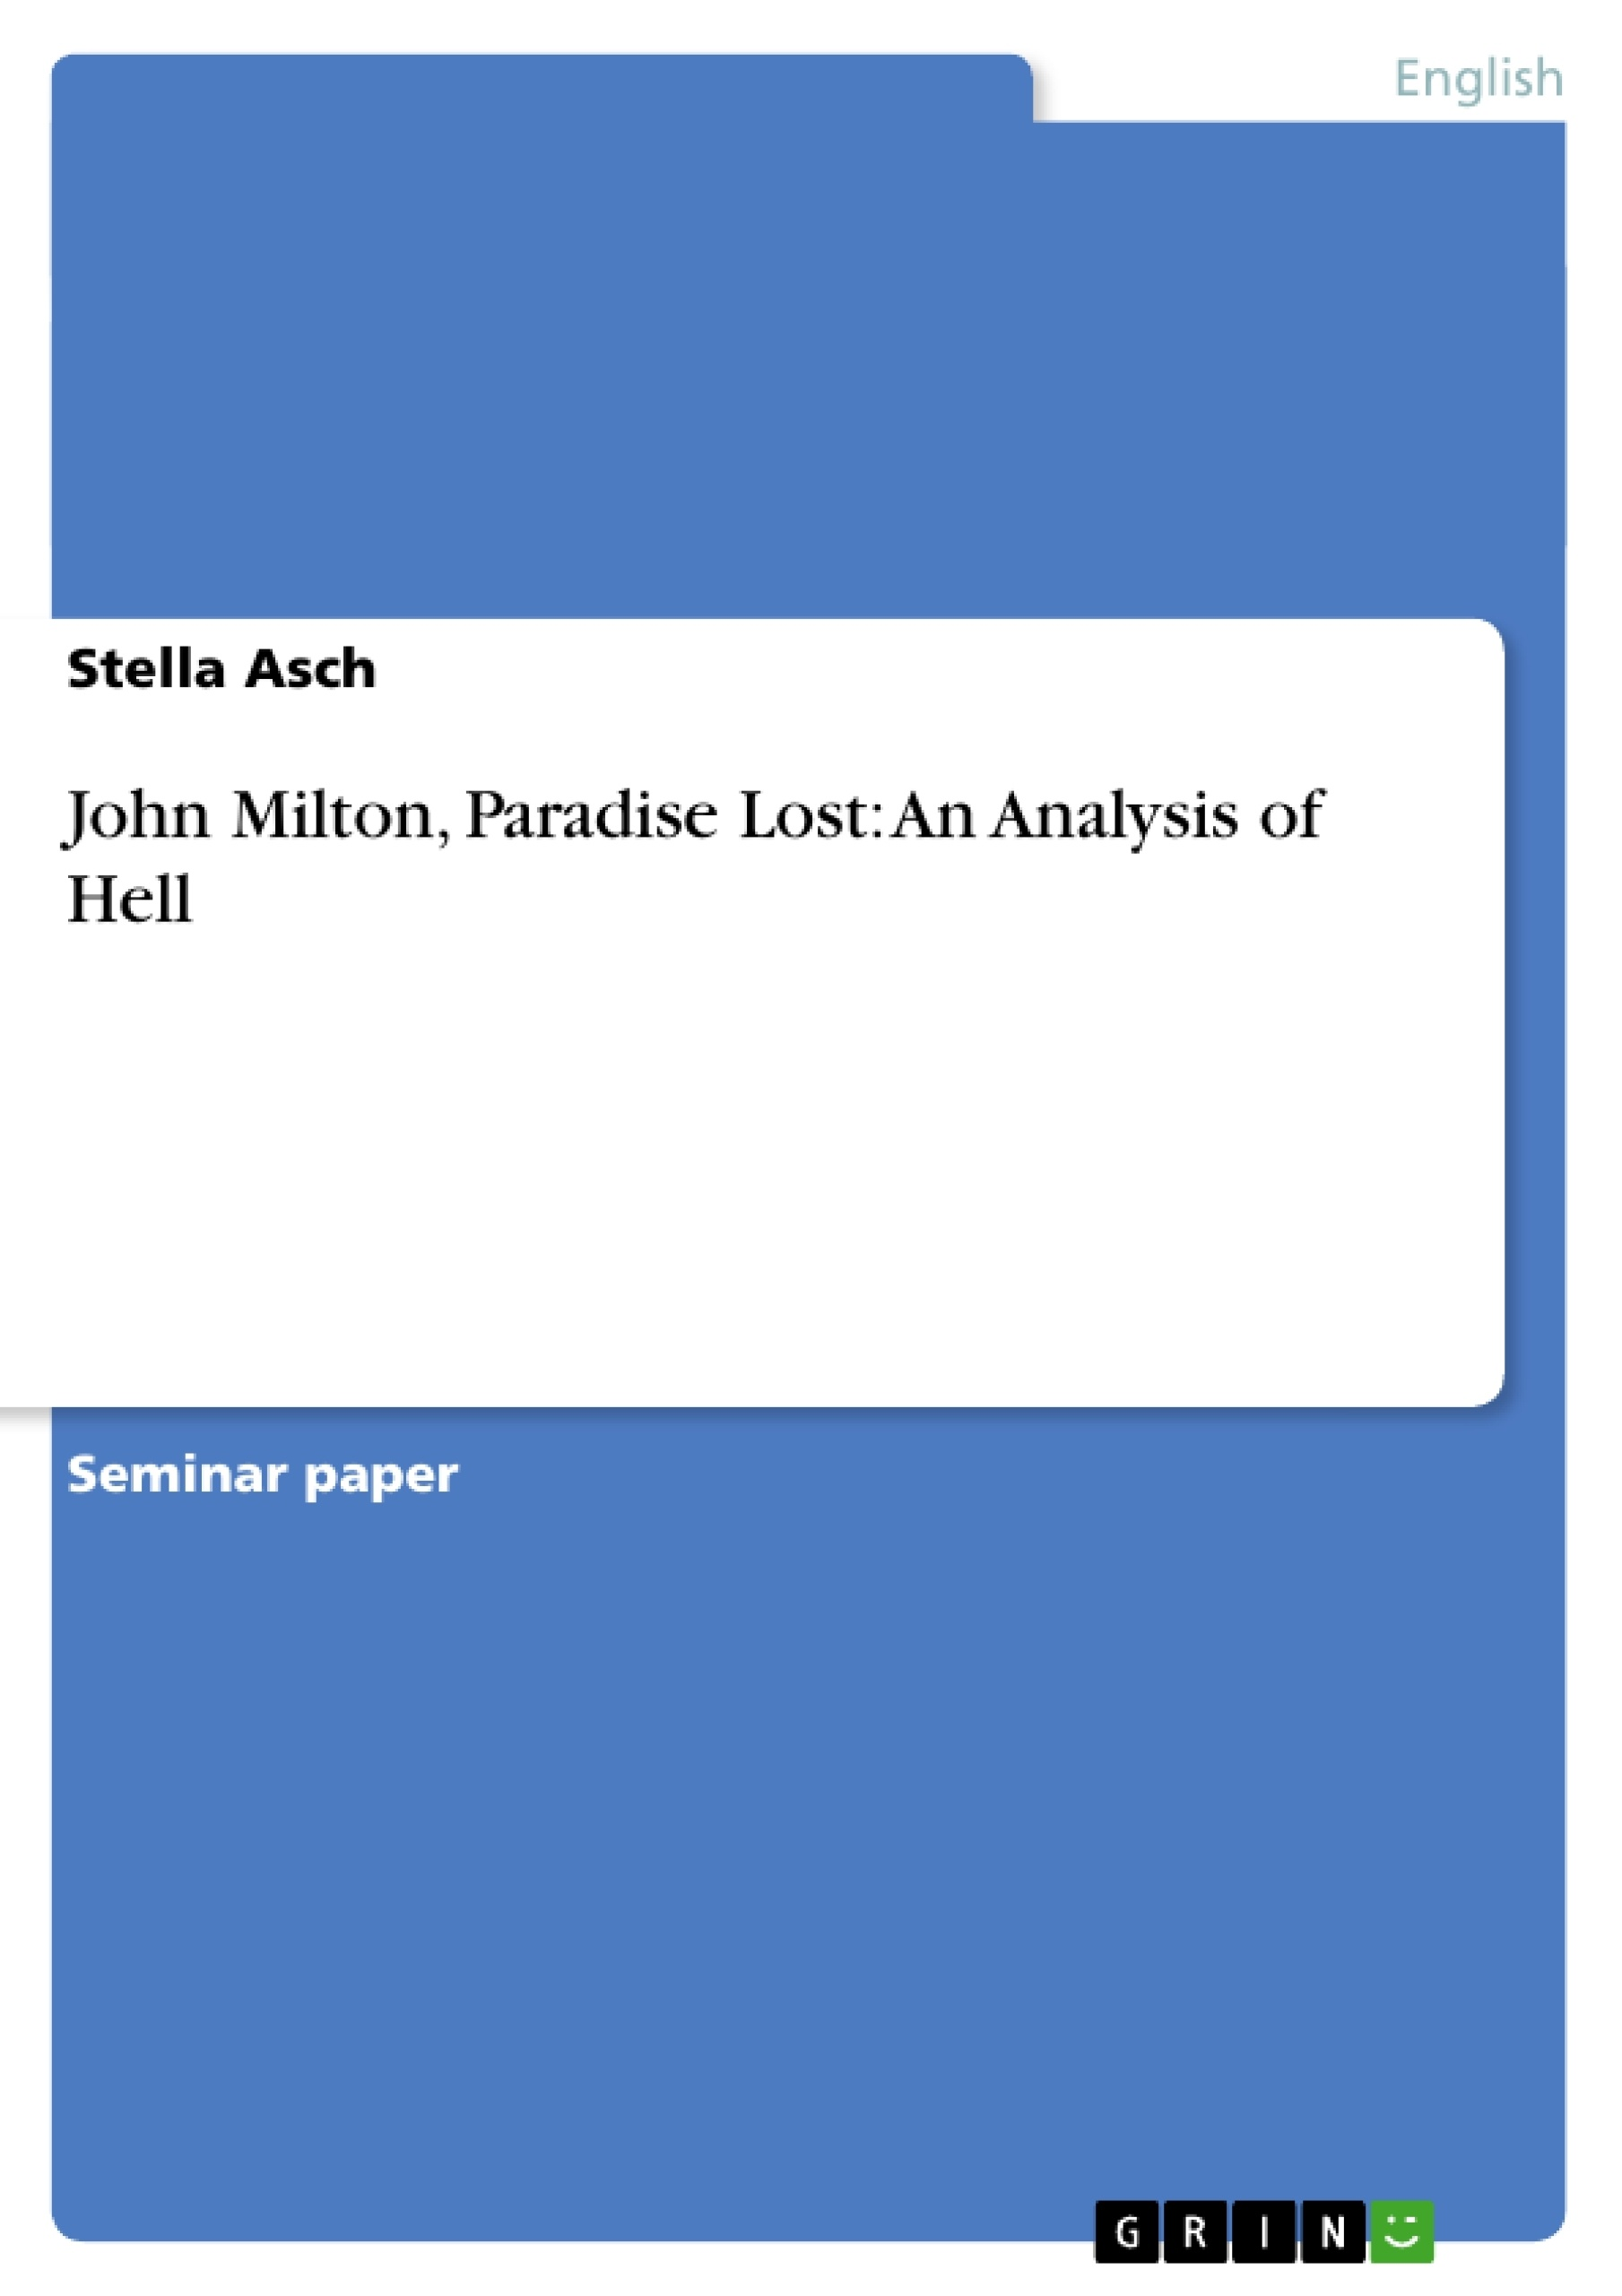 From hell film analysis essay